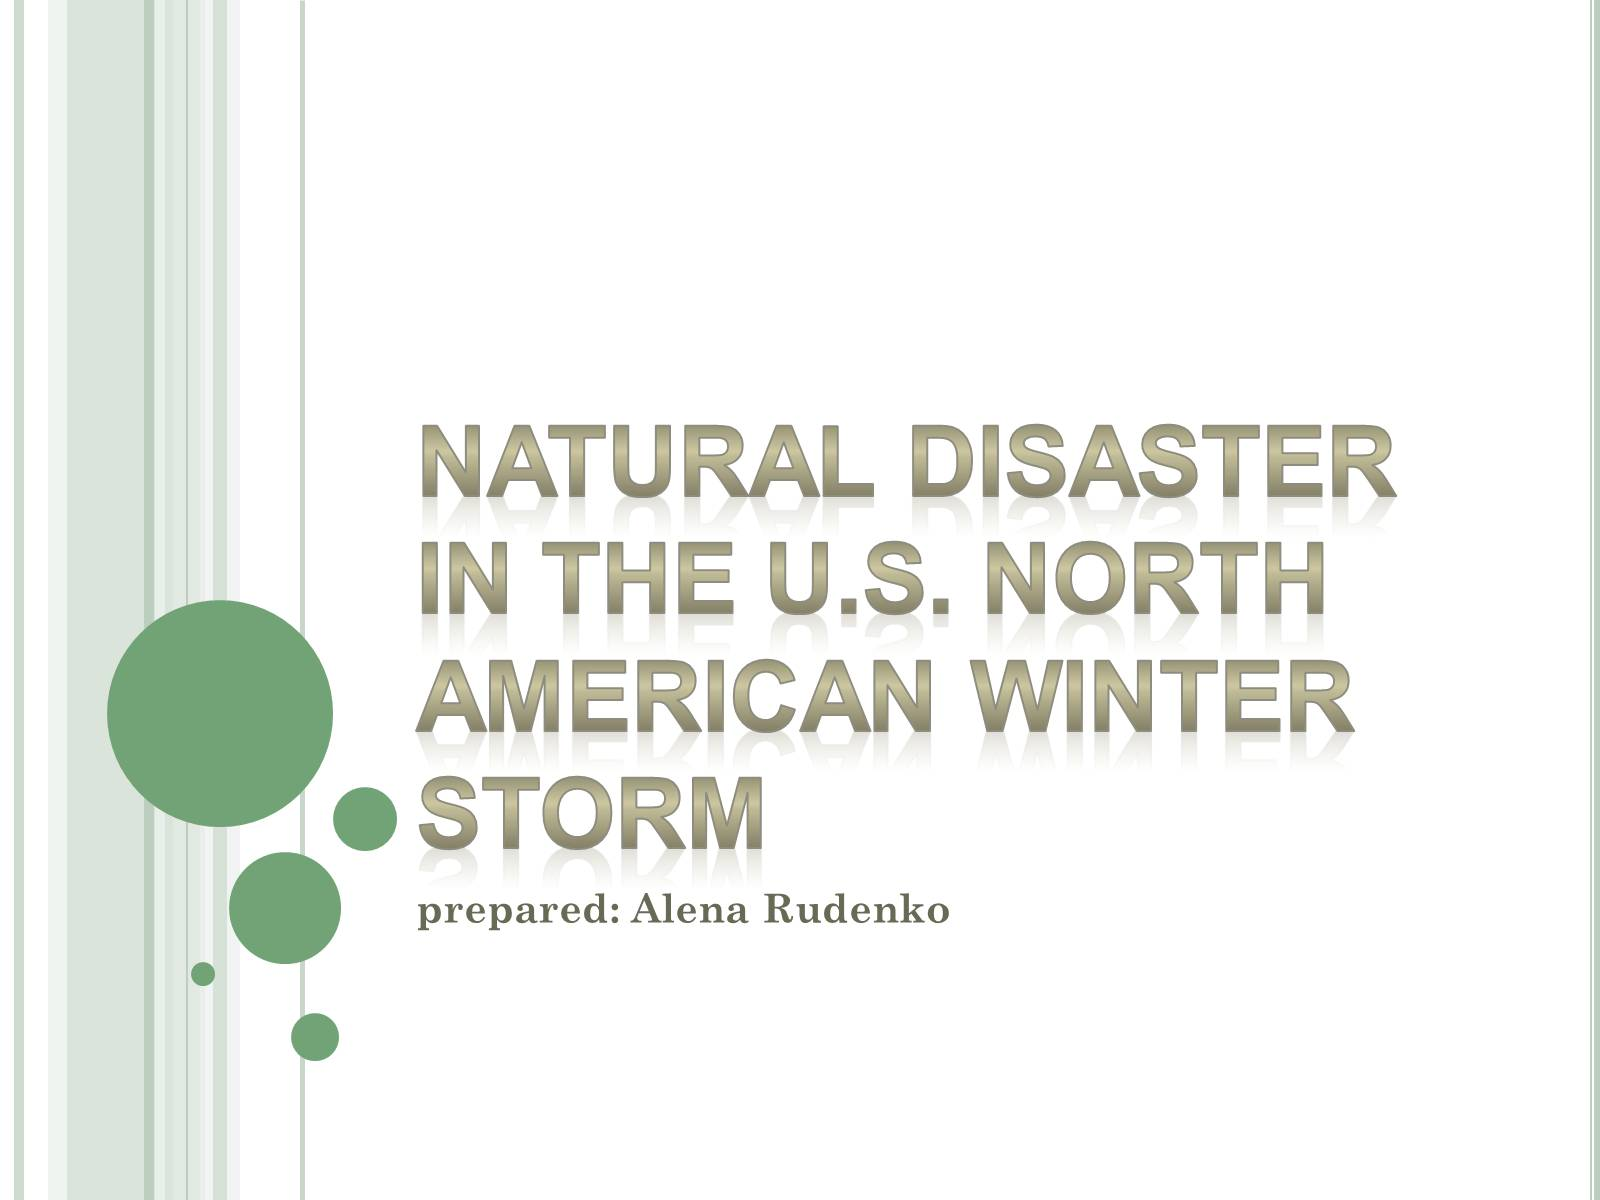 Презентація на тему «Natural disaster in the U.S. North American winter storm» - Слайд #1